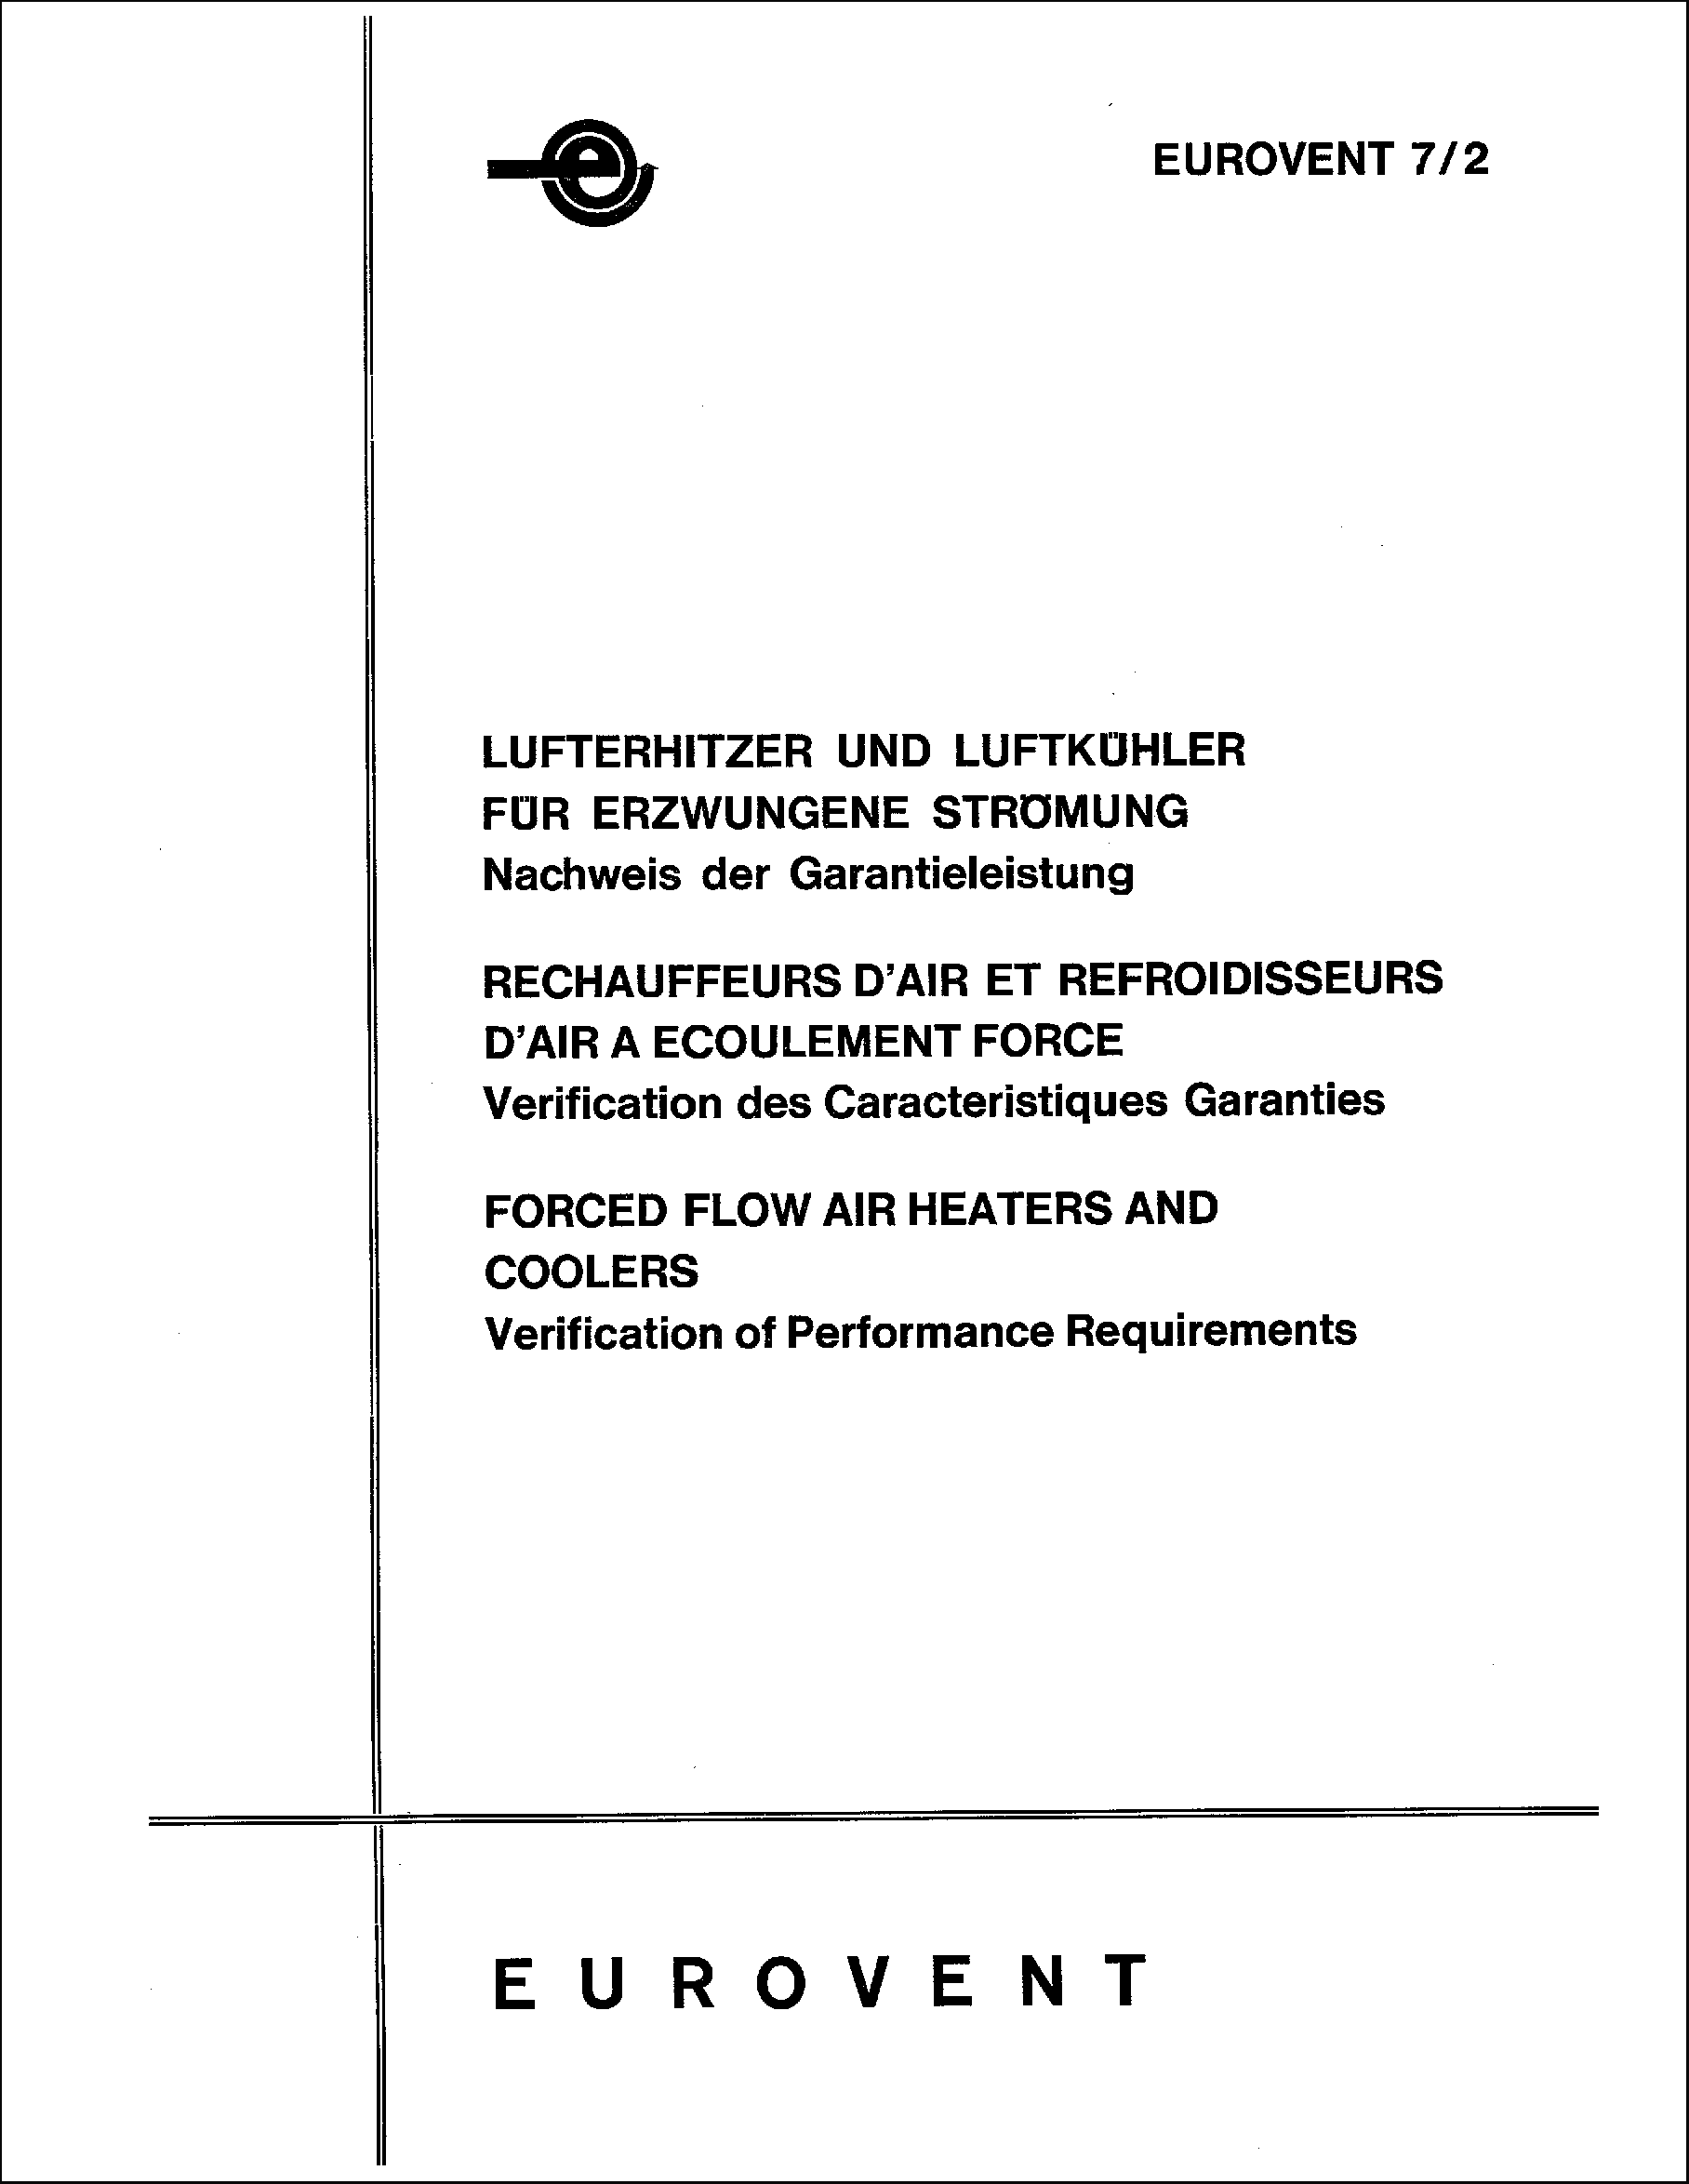 1984 - Forced flow air heaters and coolers: Verification of performance requirements